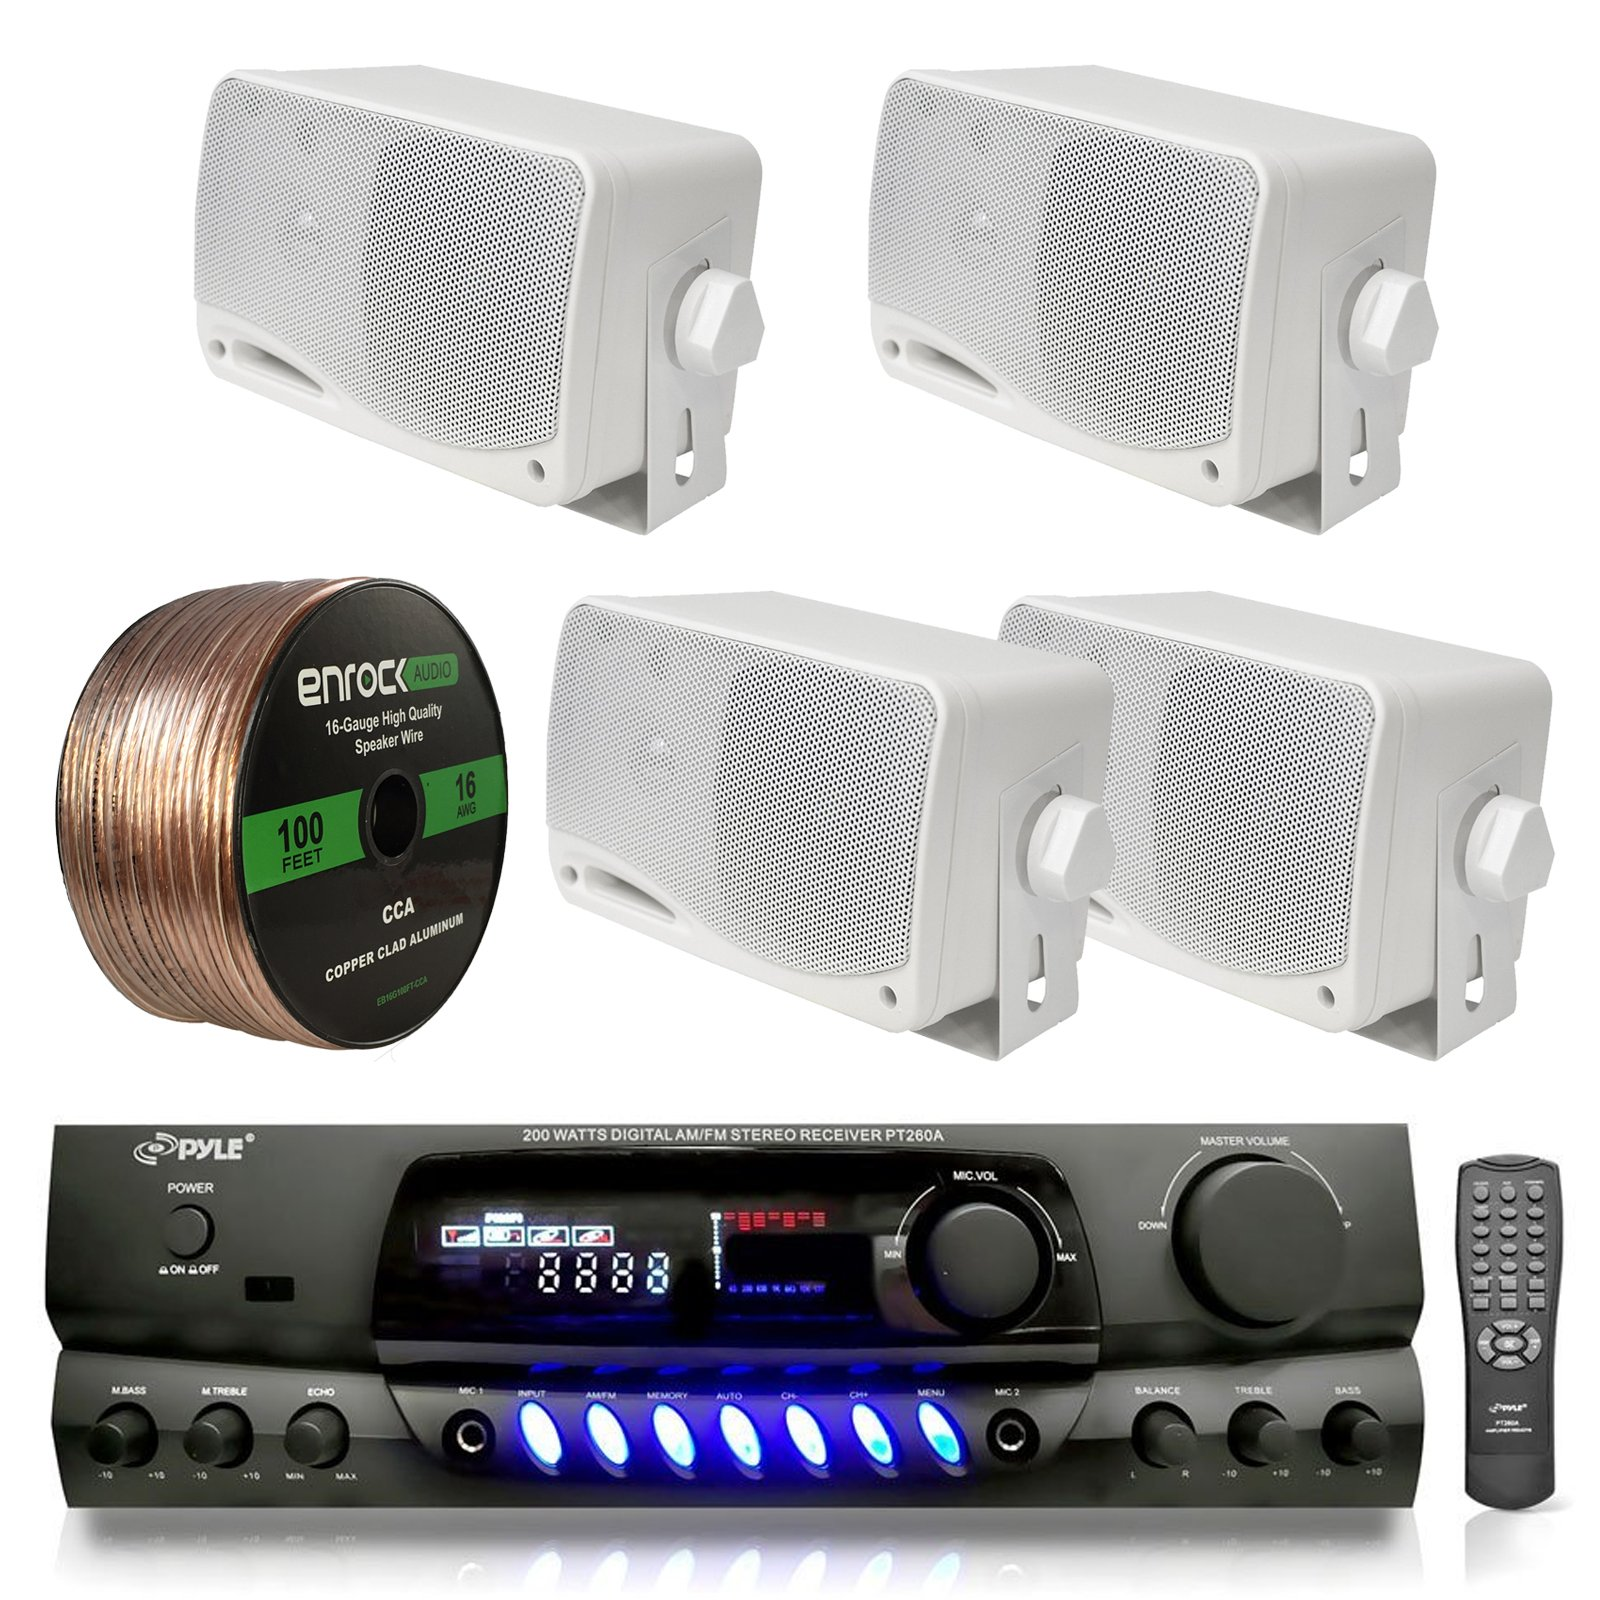 4) PYLE PLMR24 200W Outdoor Speakers + PT260A 200W Stereo Theater Receiver by Pyle